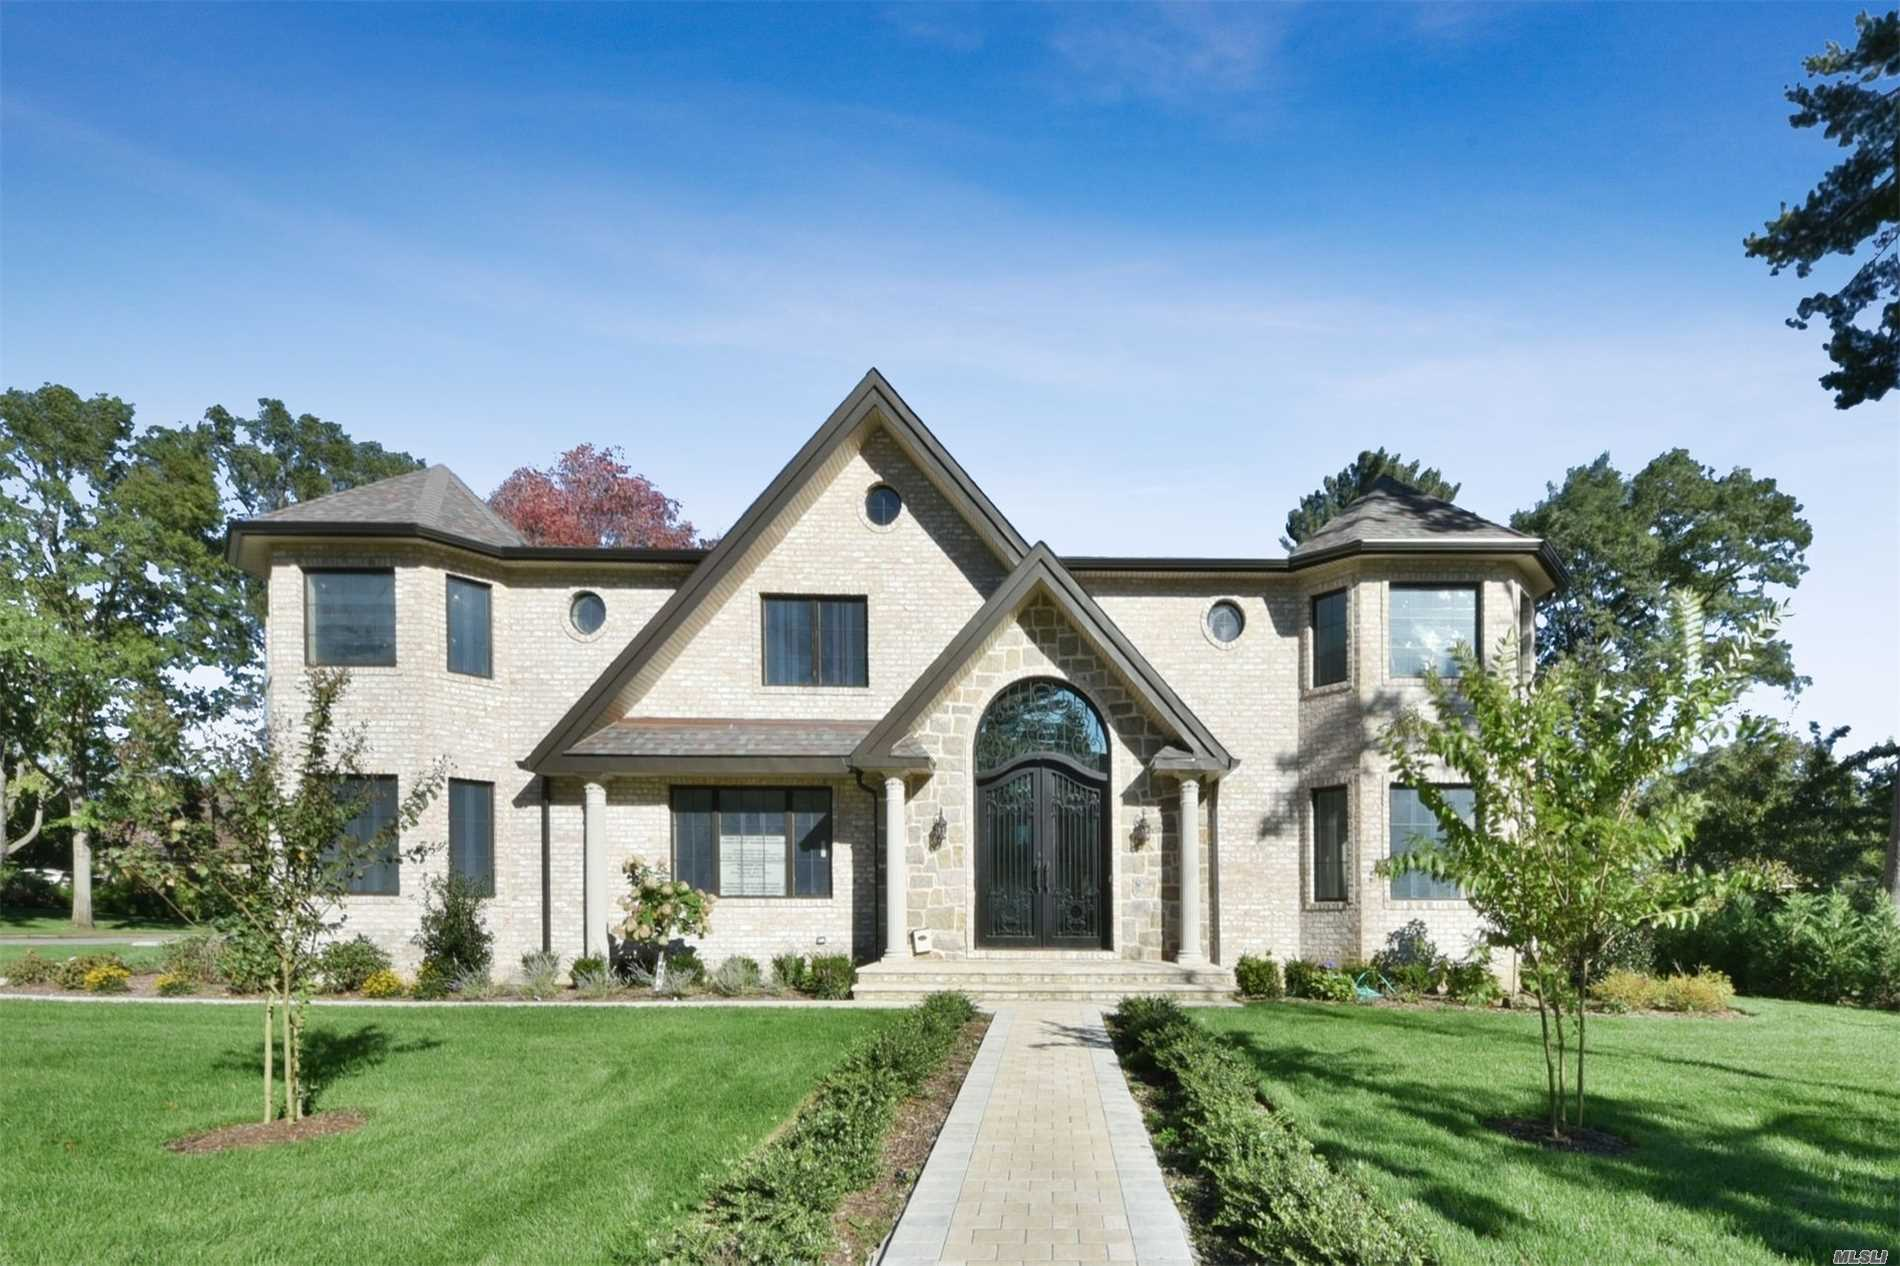 Majestic 2019 Colonial Located In Roslyn Country Club. Entering You Have A Sense Of Glamour, Flow And Openness Throughout. Formal Lr Is Warm & Inviting W/Custom Millwork & Architectural Design, Family Rm W/Gas Fpl Overlooks Professionally Landscaped Yard. State Of The Art Chef's Kit. W/Top Of The Line Appliances. Beautifully Appointed Formal Dr. Entry Foyer With Bridal Staircase. Master Suite Fit For Royalty Plus 4 Add'l Bedrooms W/Luxury Baths. Award Winning East Williston Schools.